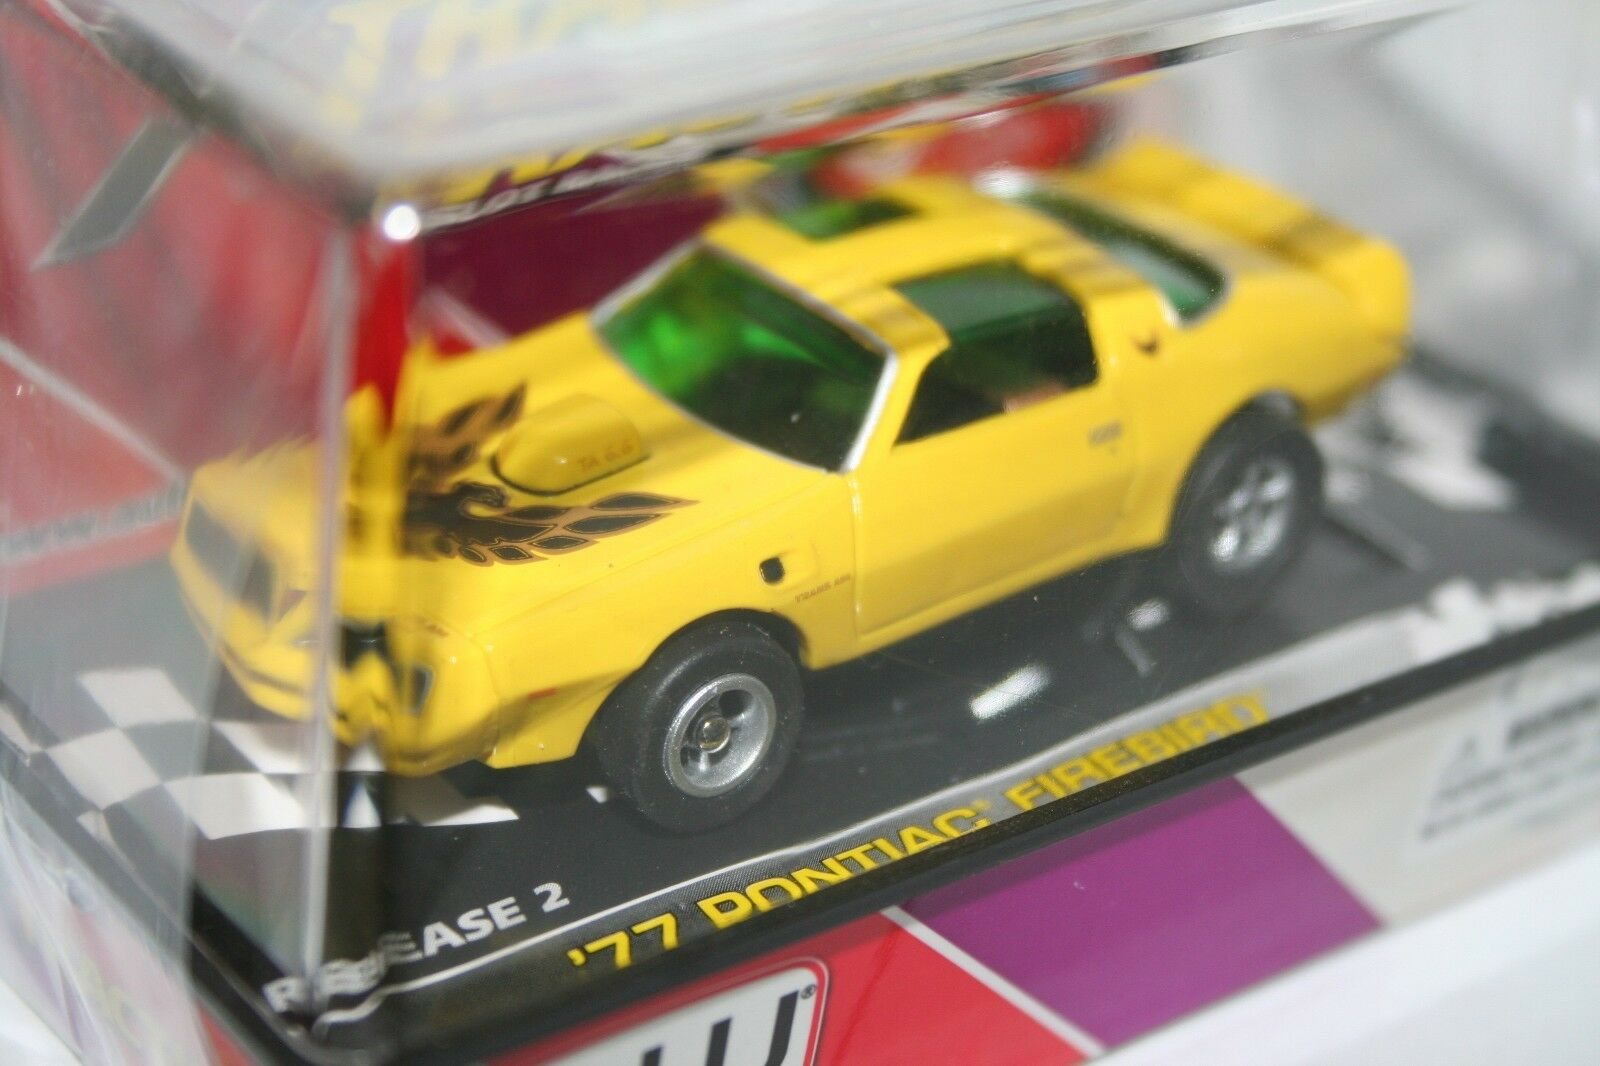 Rare 2007 Auto World 77 Pontiac Firebird HO Scale Slot Car Release Car